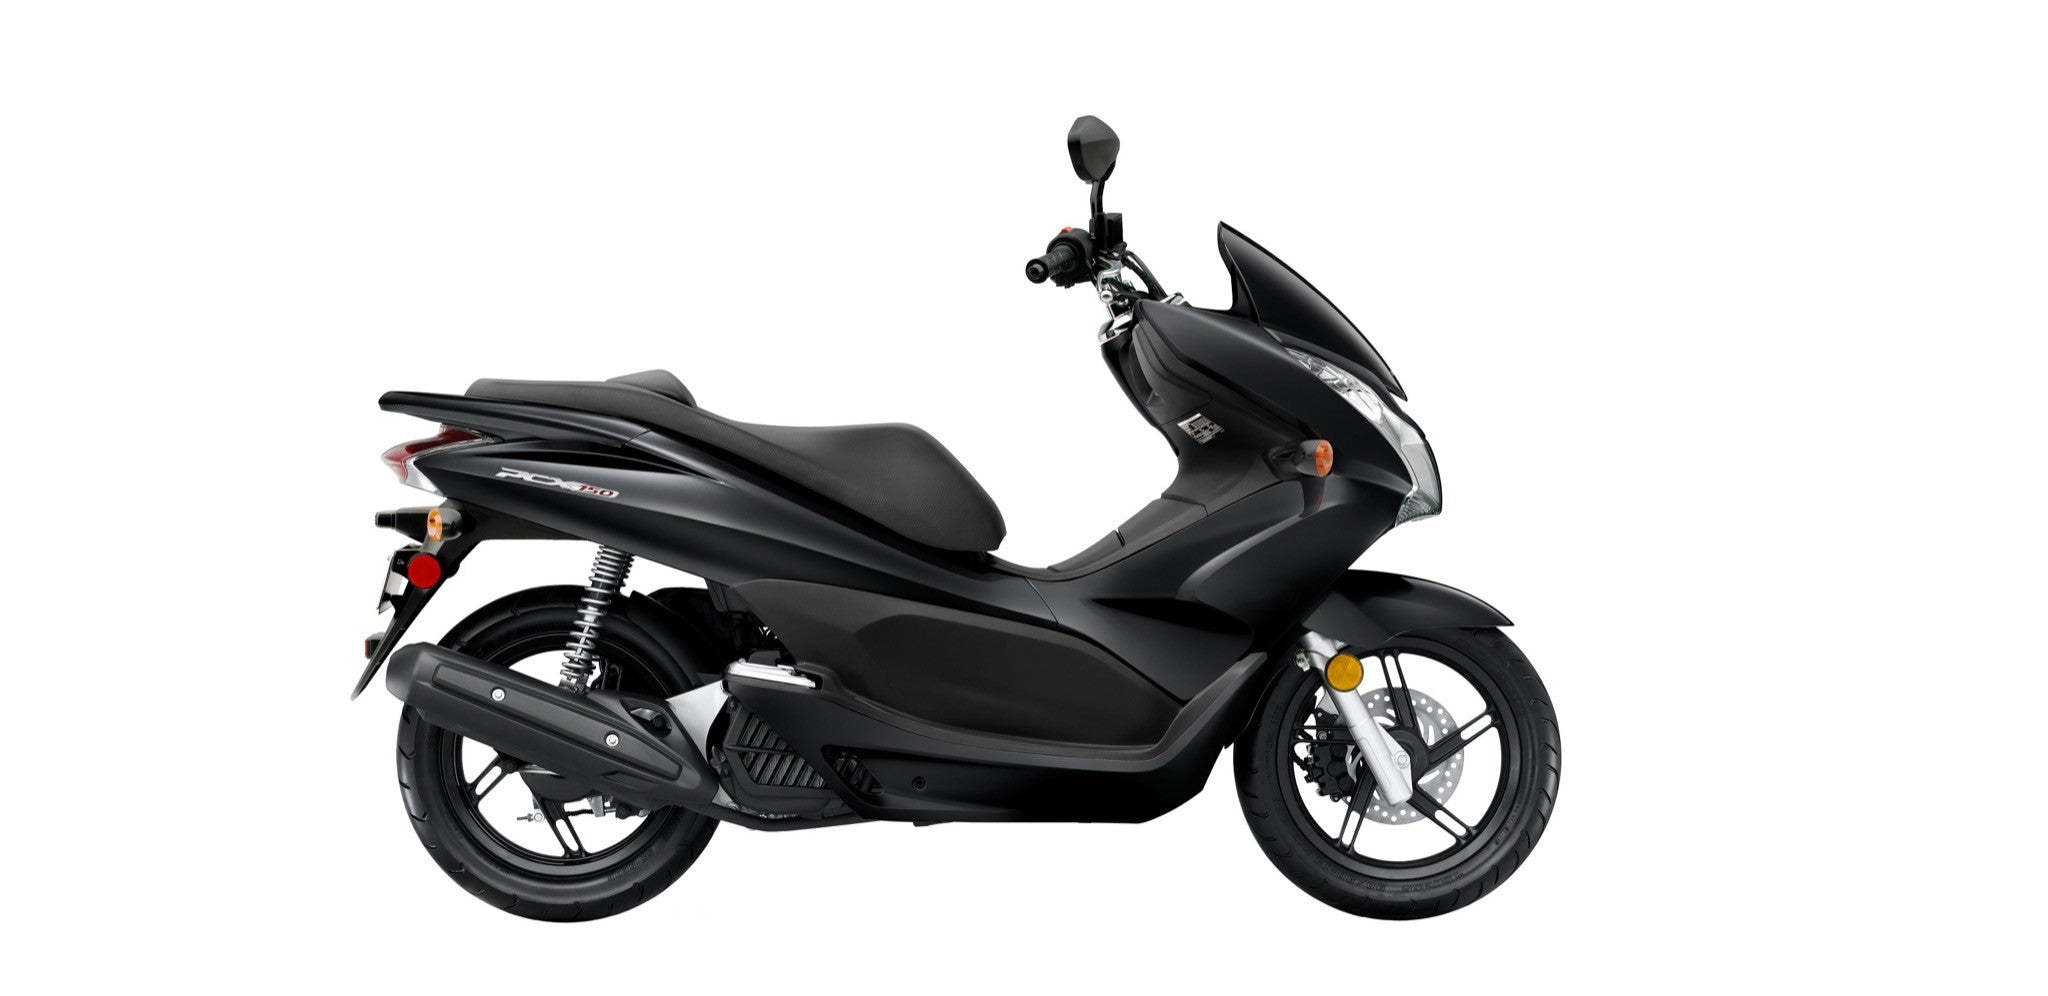 fully most however hybrid output featuring unveiled electric bikesrepublic by high is and scooter pcx developed honda novel feature its motor mobile featured a the